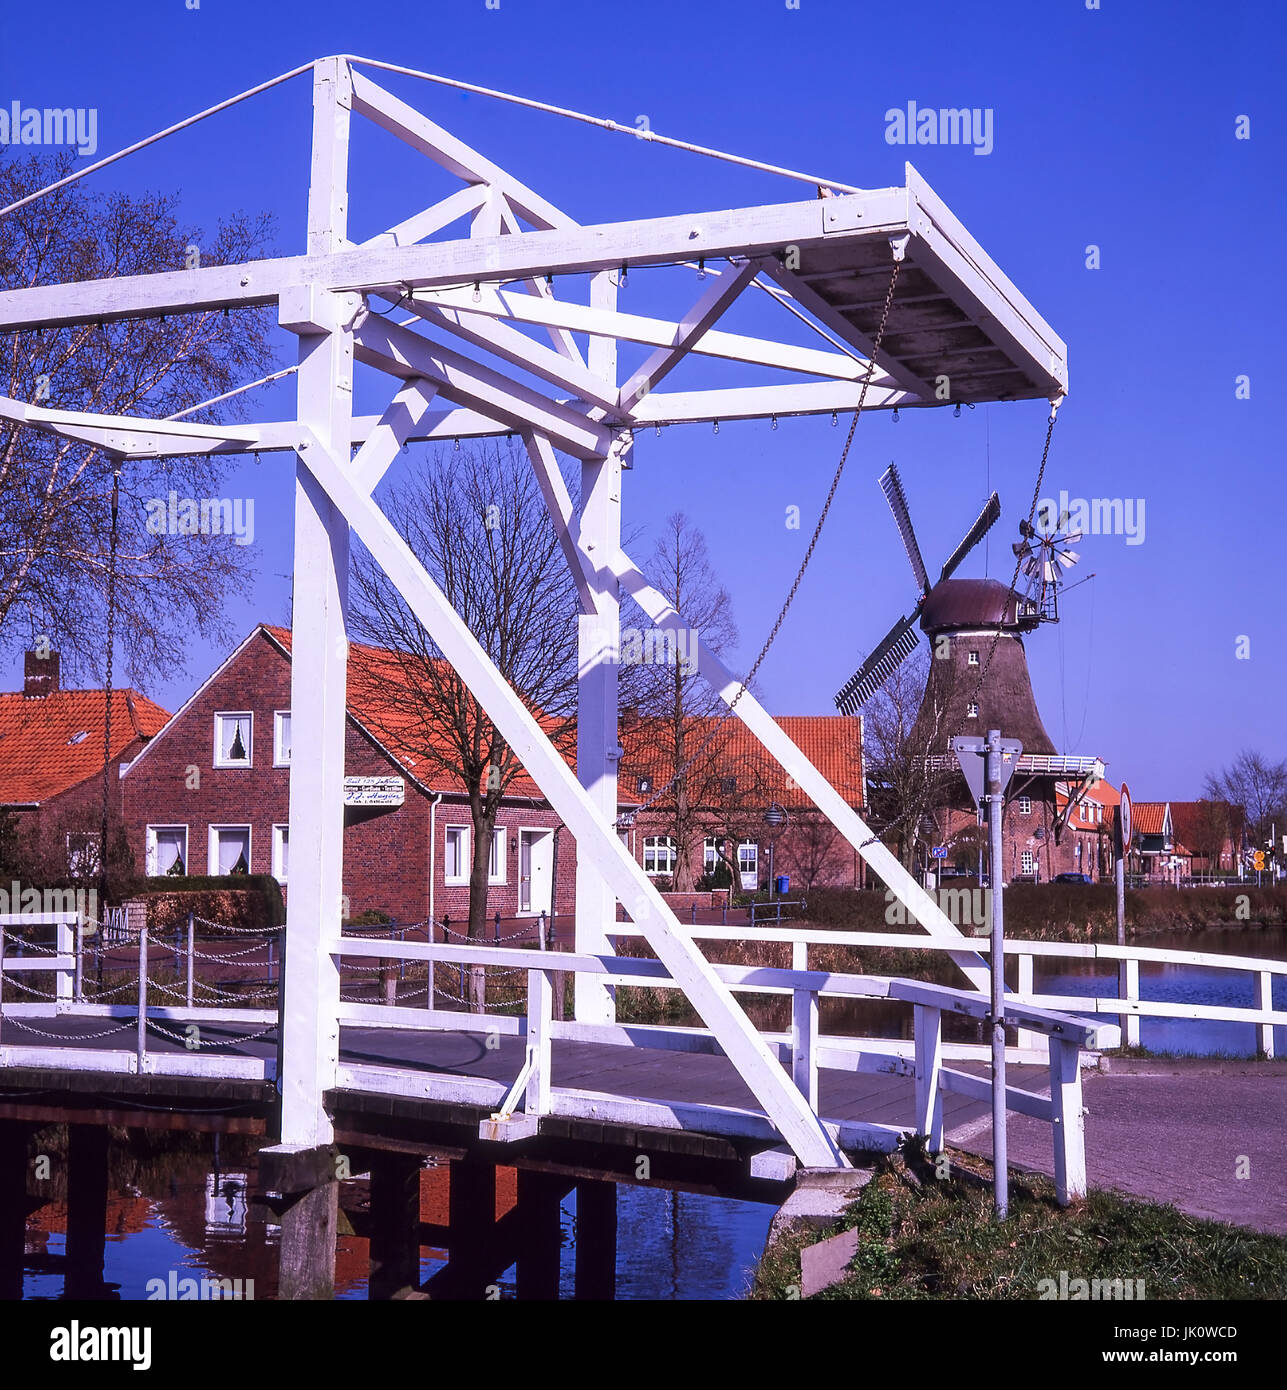 'white balance bridge about the canal from mittegrossefehn, in the background reetgedeckte windmill. white folding - Stock Image